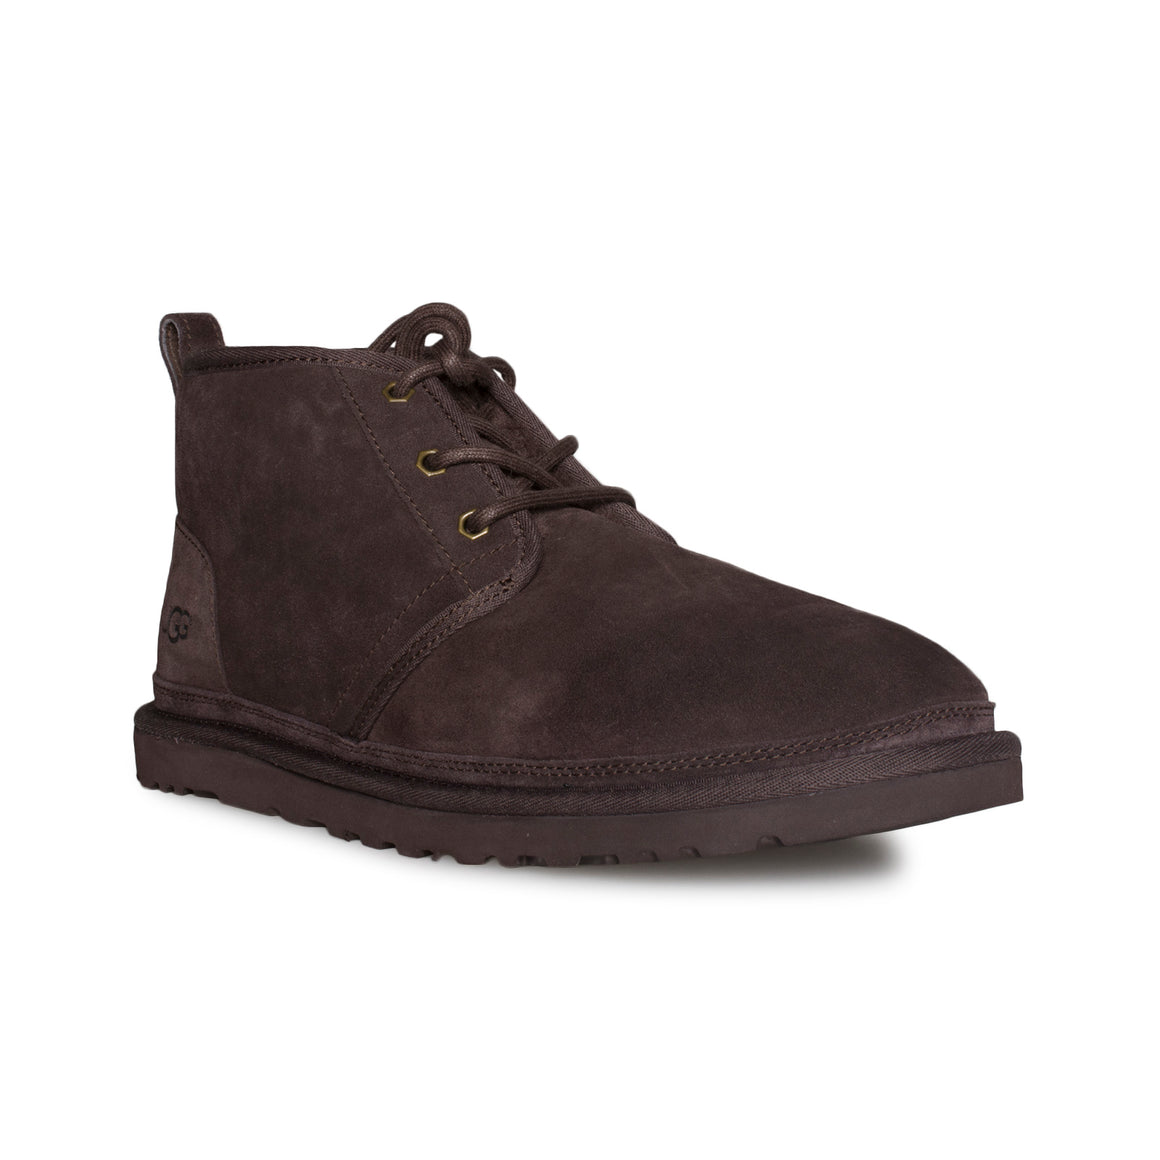 UGG Neumel Espress Shoes - Men's